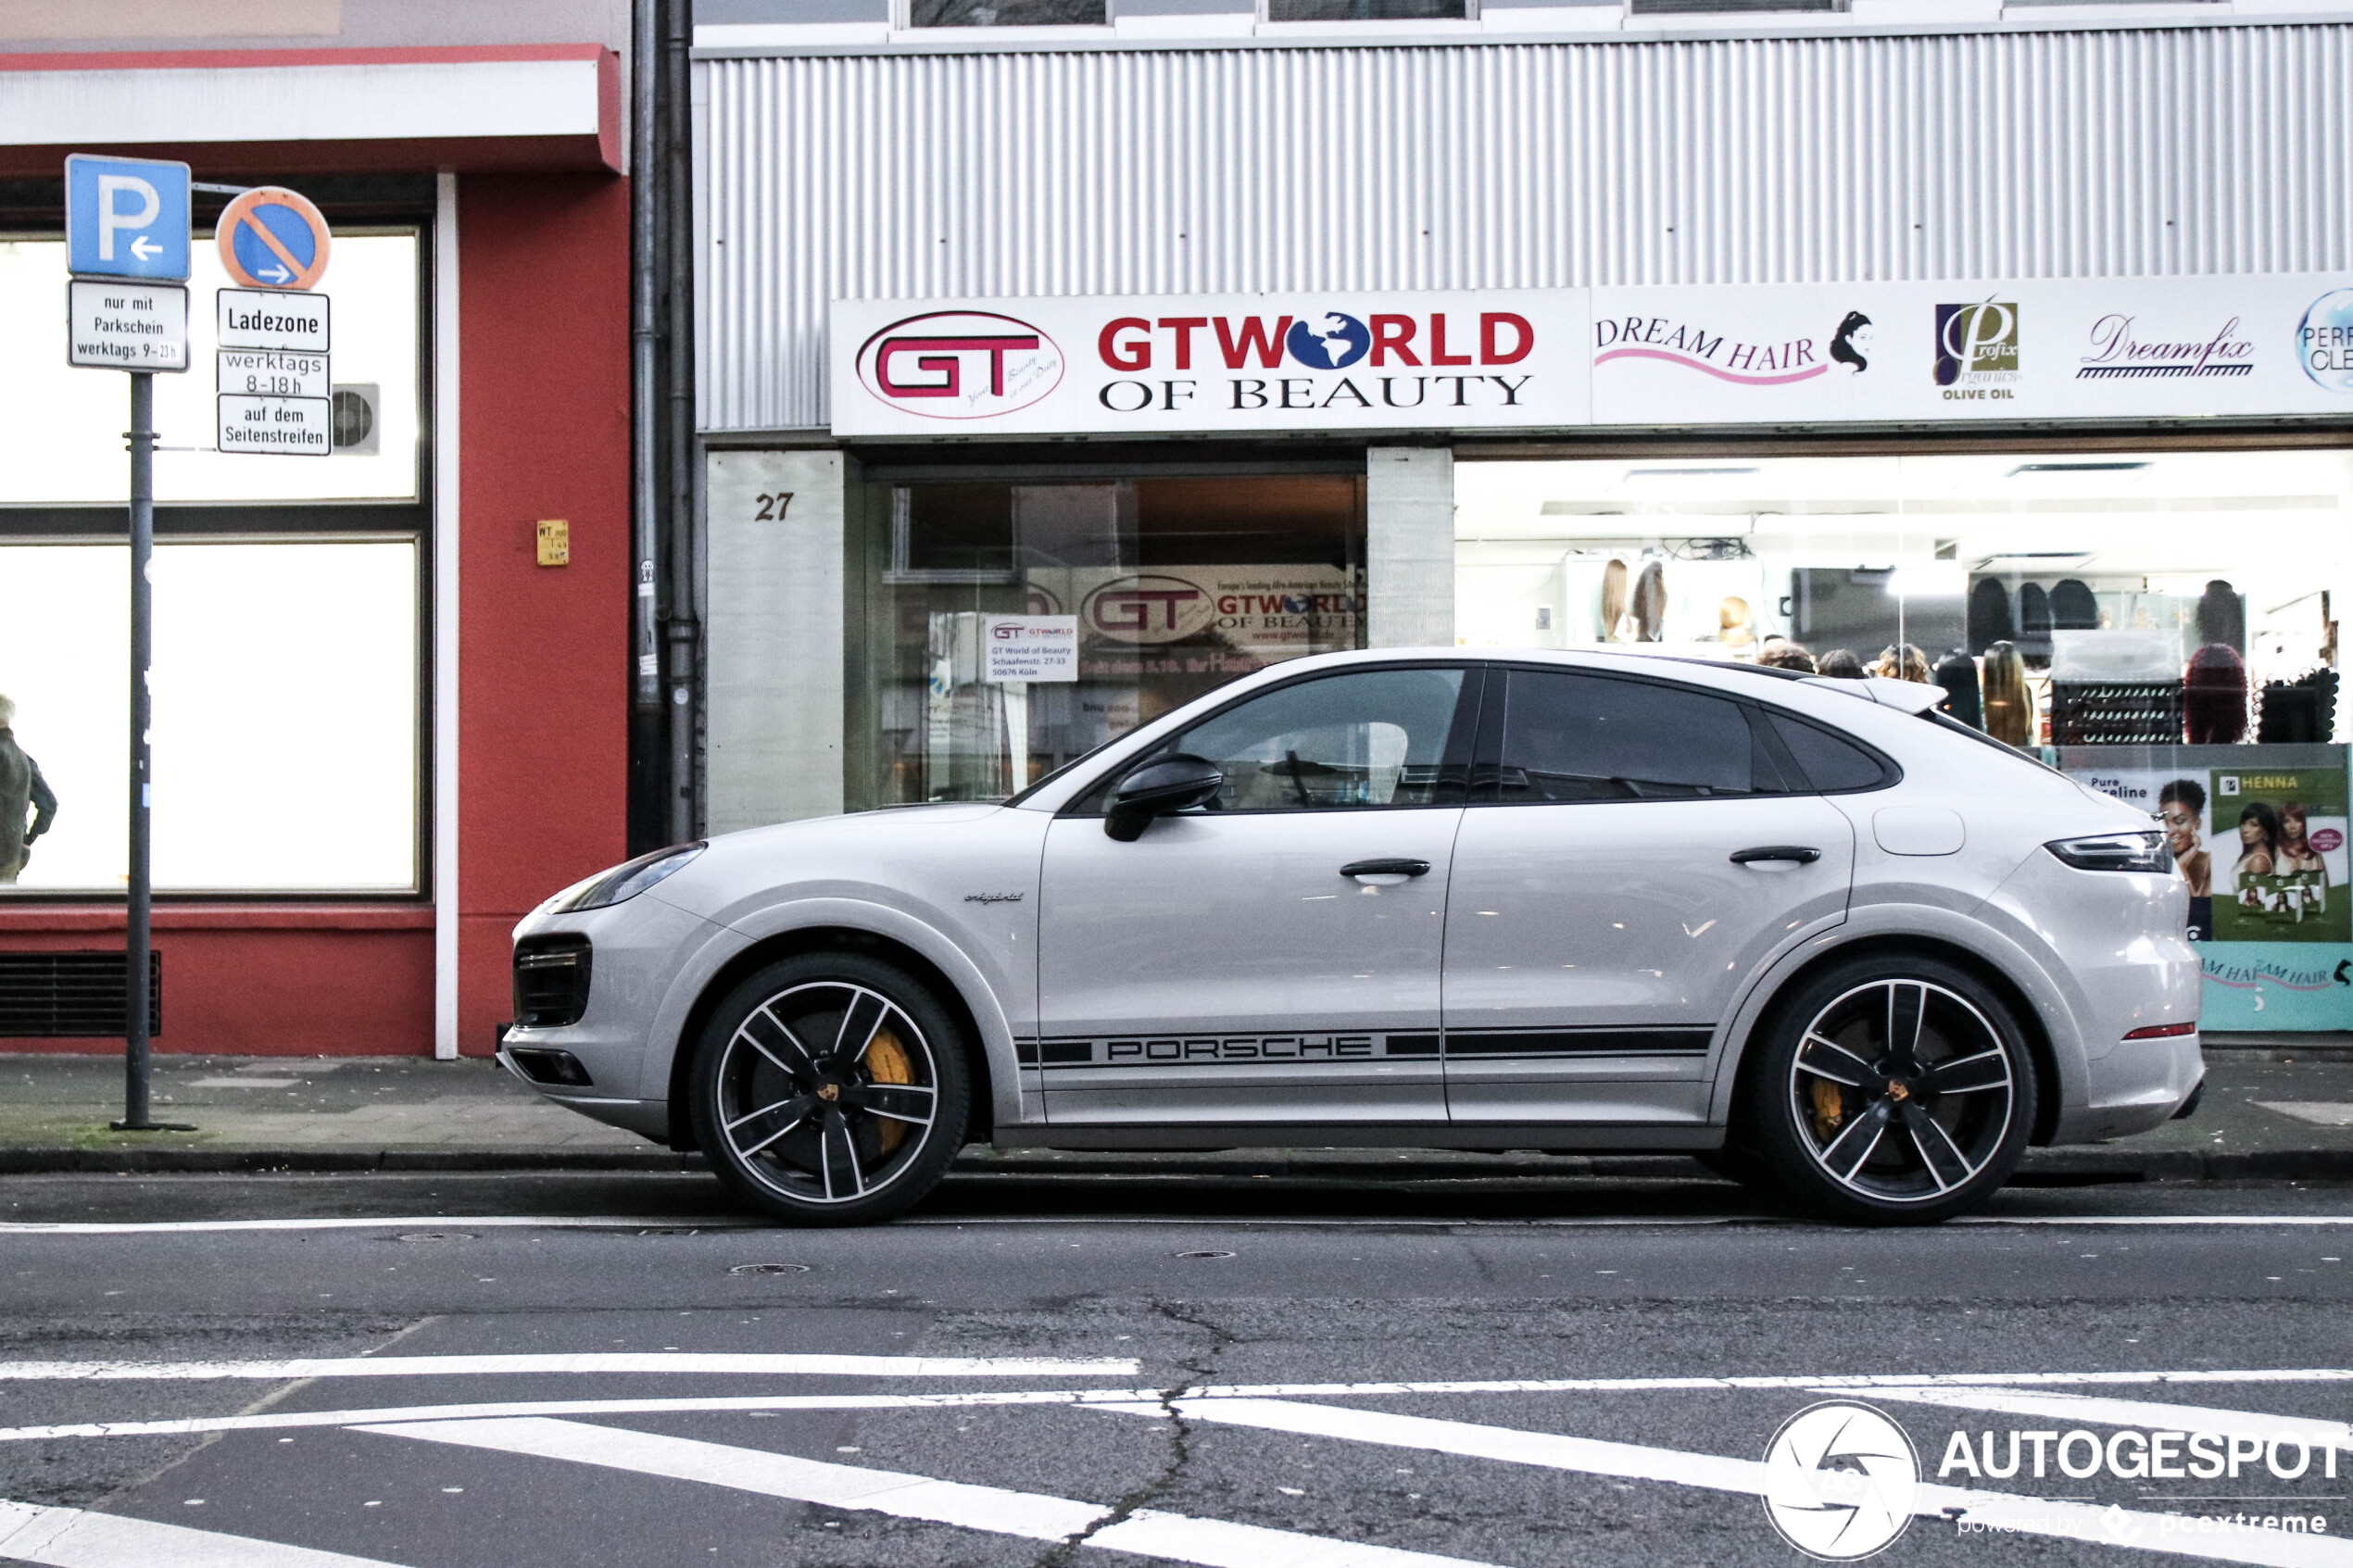 Porsche Cayenne Coupe Turbo S E Hybrid 8 March 2020 Autogespot